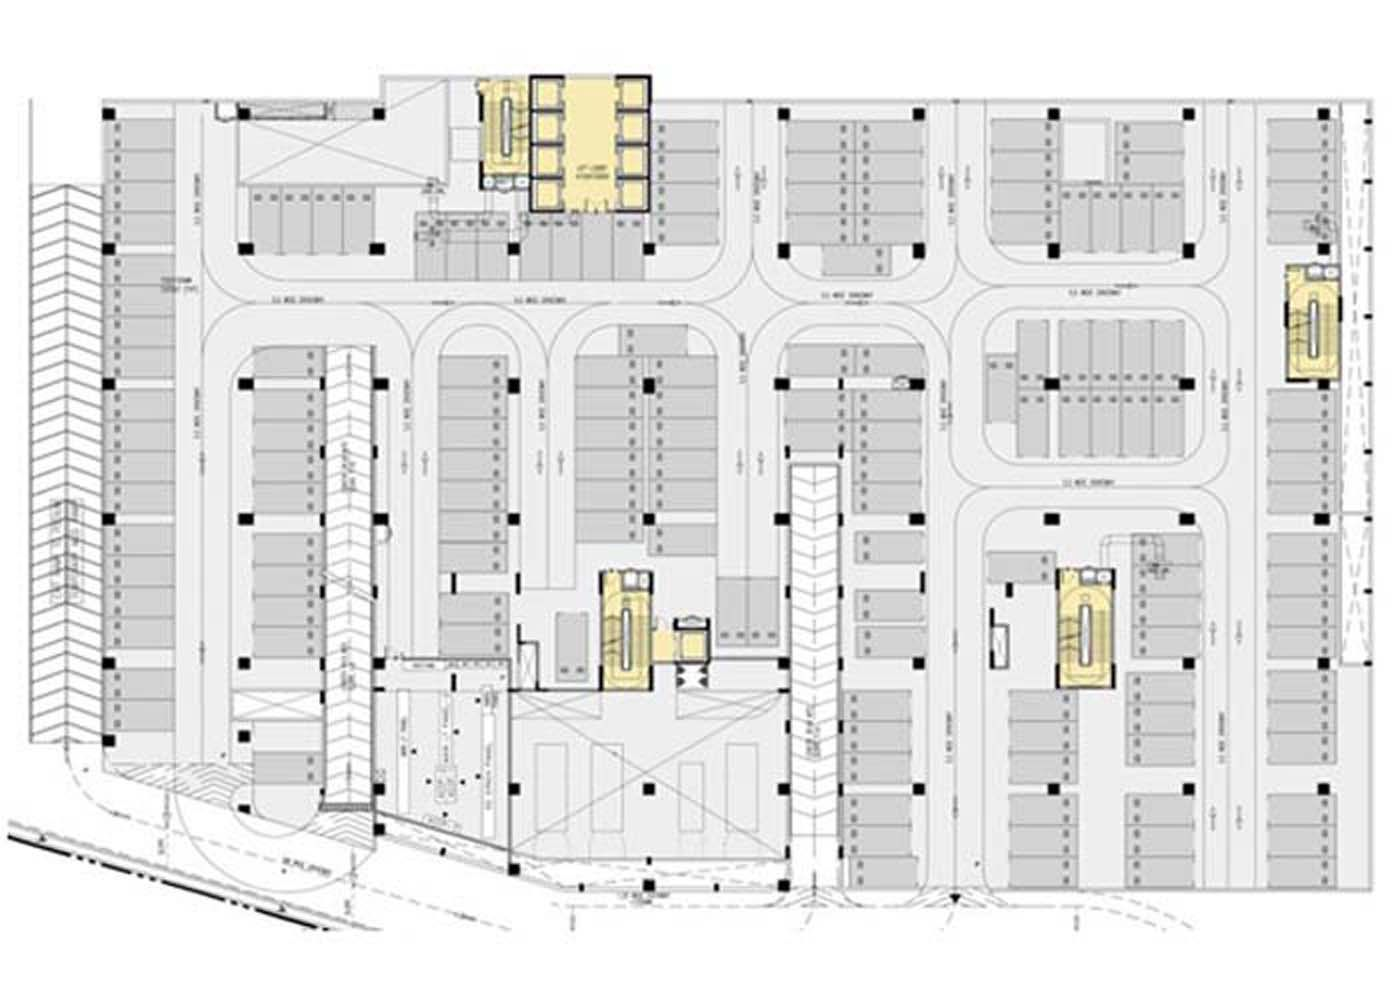 1323779394PARKING PLAN.jpg Arsitektur lanskap